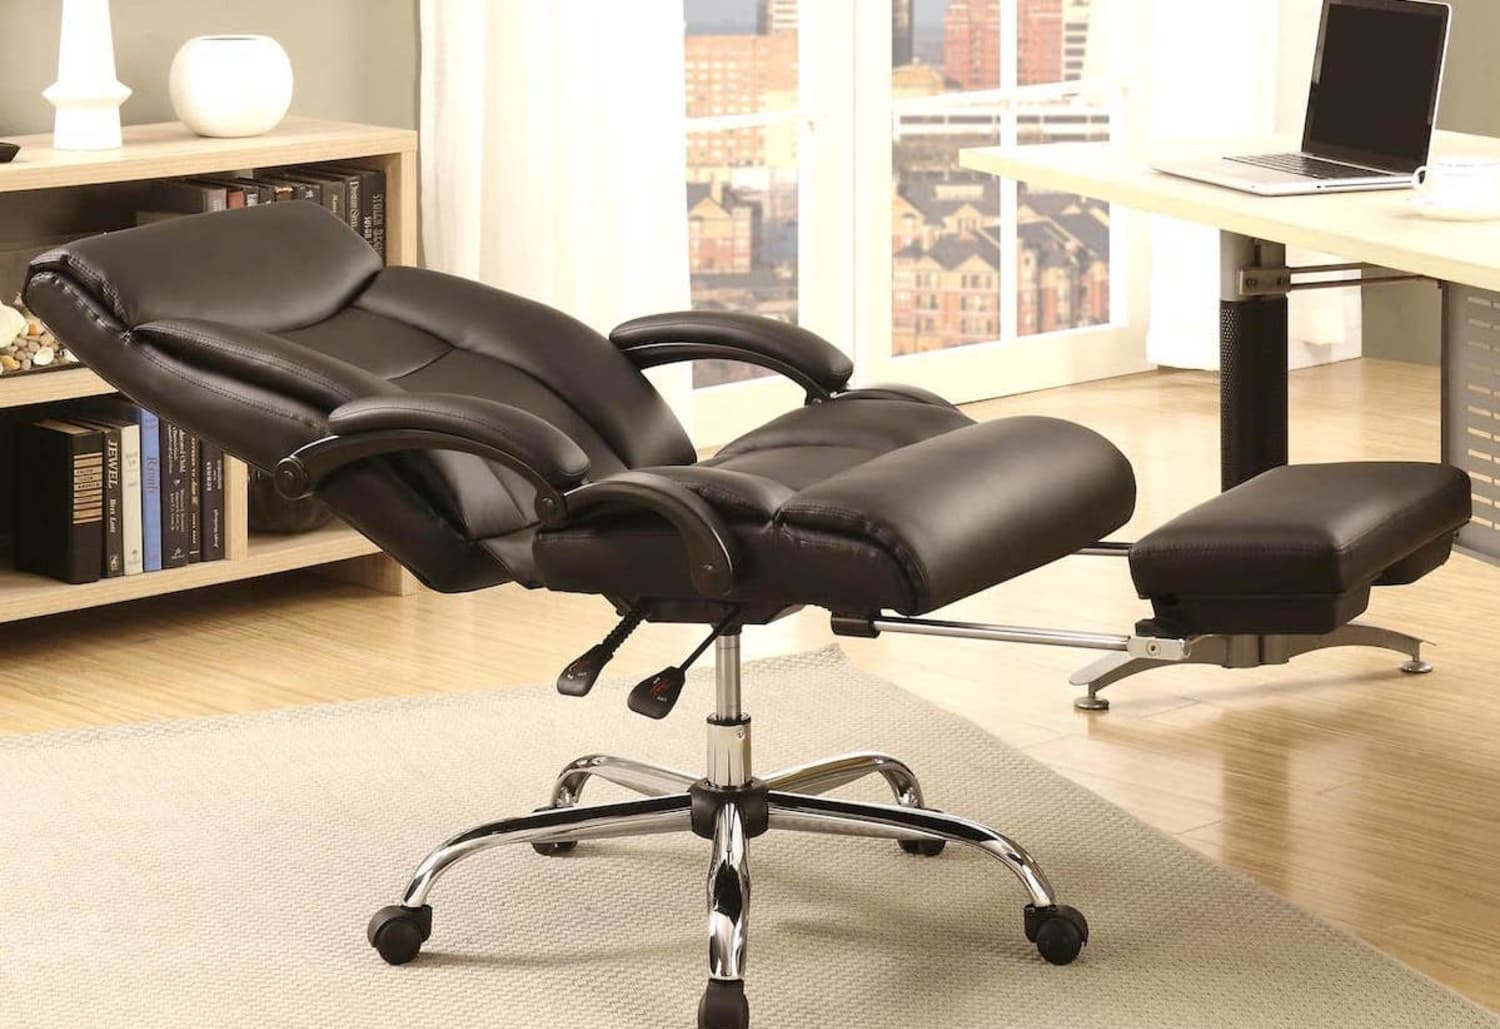 This Office Chair Will Let You Take a Comfortable Nap at Work